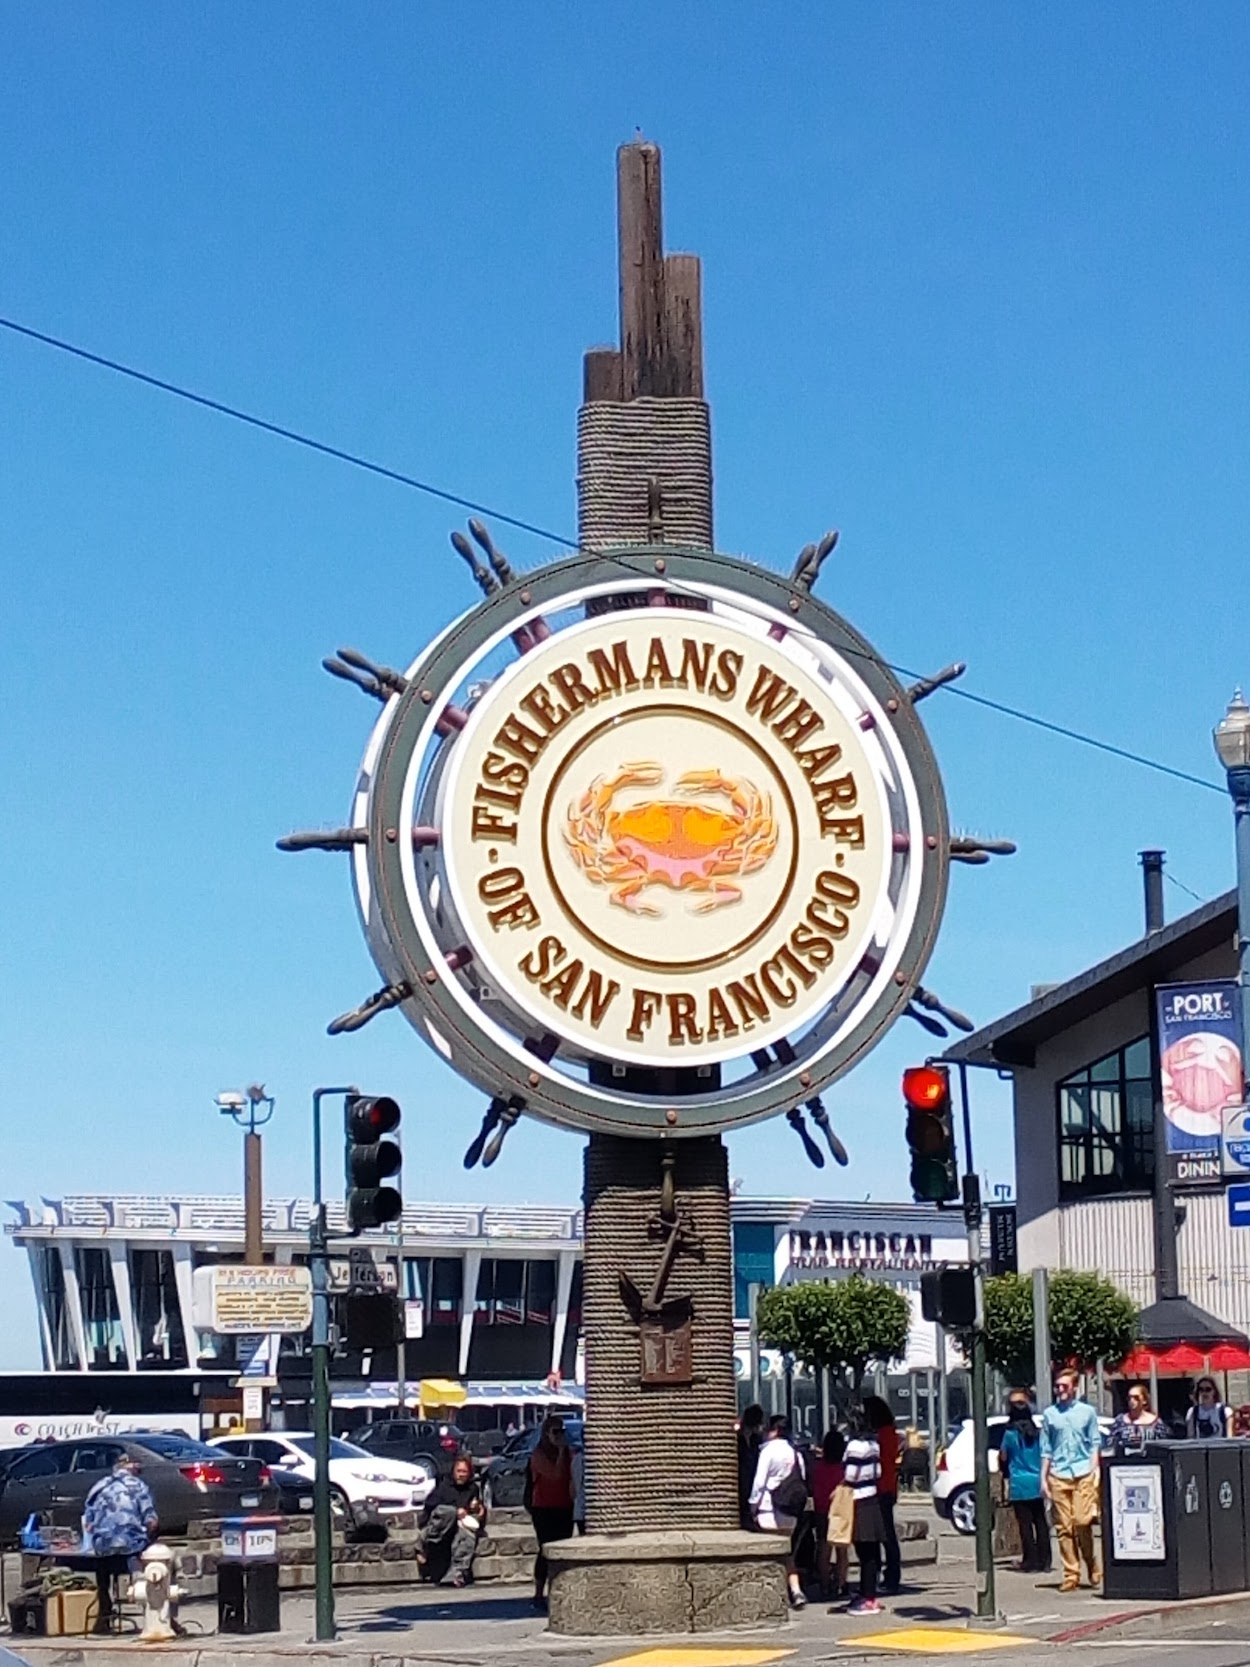 San Francisco Bay Area - Fishermans Wharf